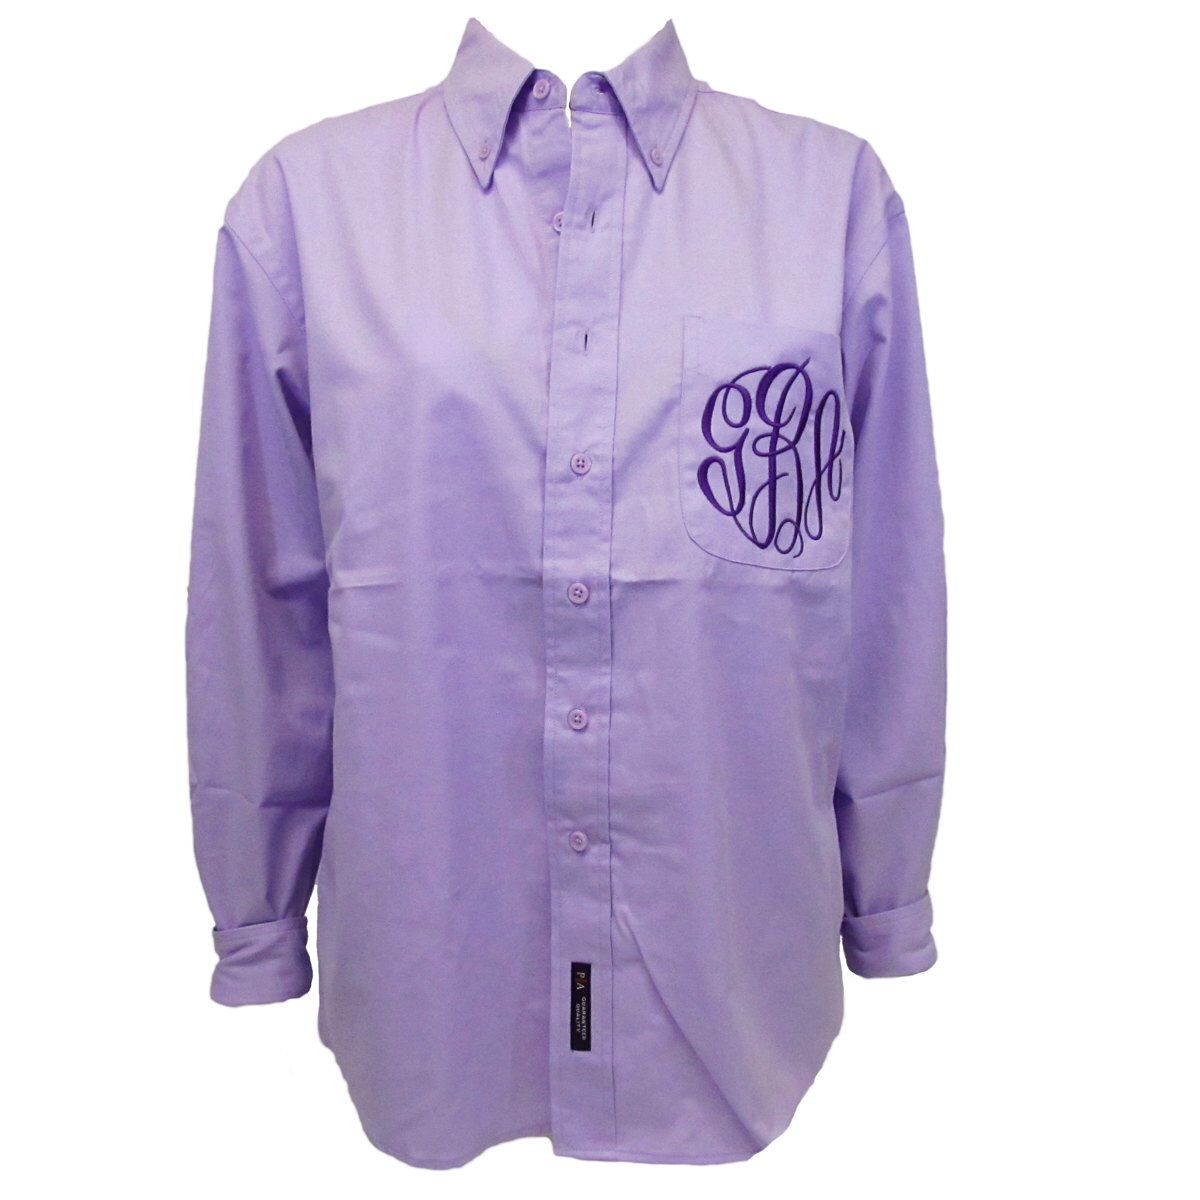 Monogrammed Oversized Shirt - Oversized Bride Shirt - Oversized Bridesmaid Shirts - Monogrammed Night Shirt by PremiereEmbroidery on Etsy https://www.etsy.com/listing/169765954/monogrammed-oversized-shirt-oversized